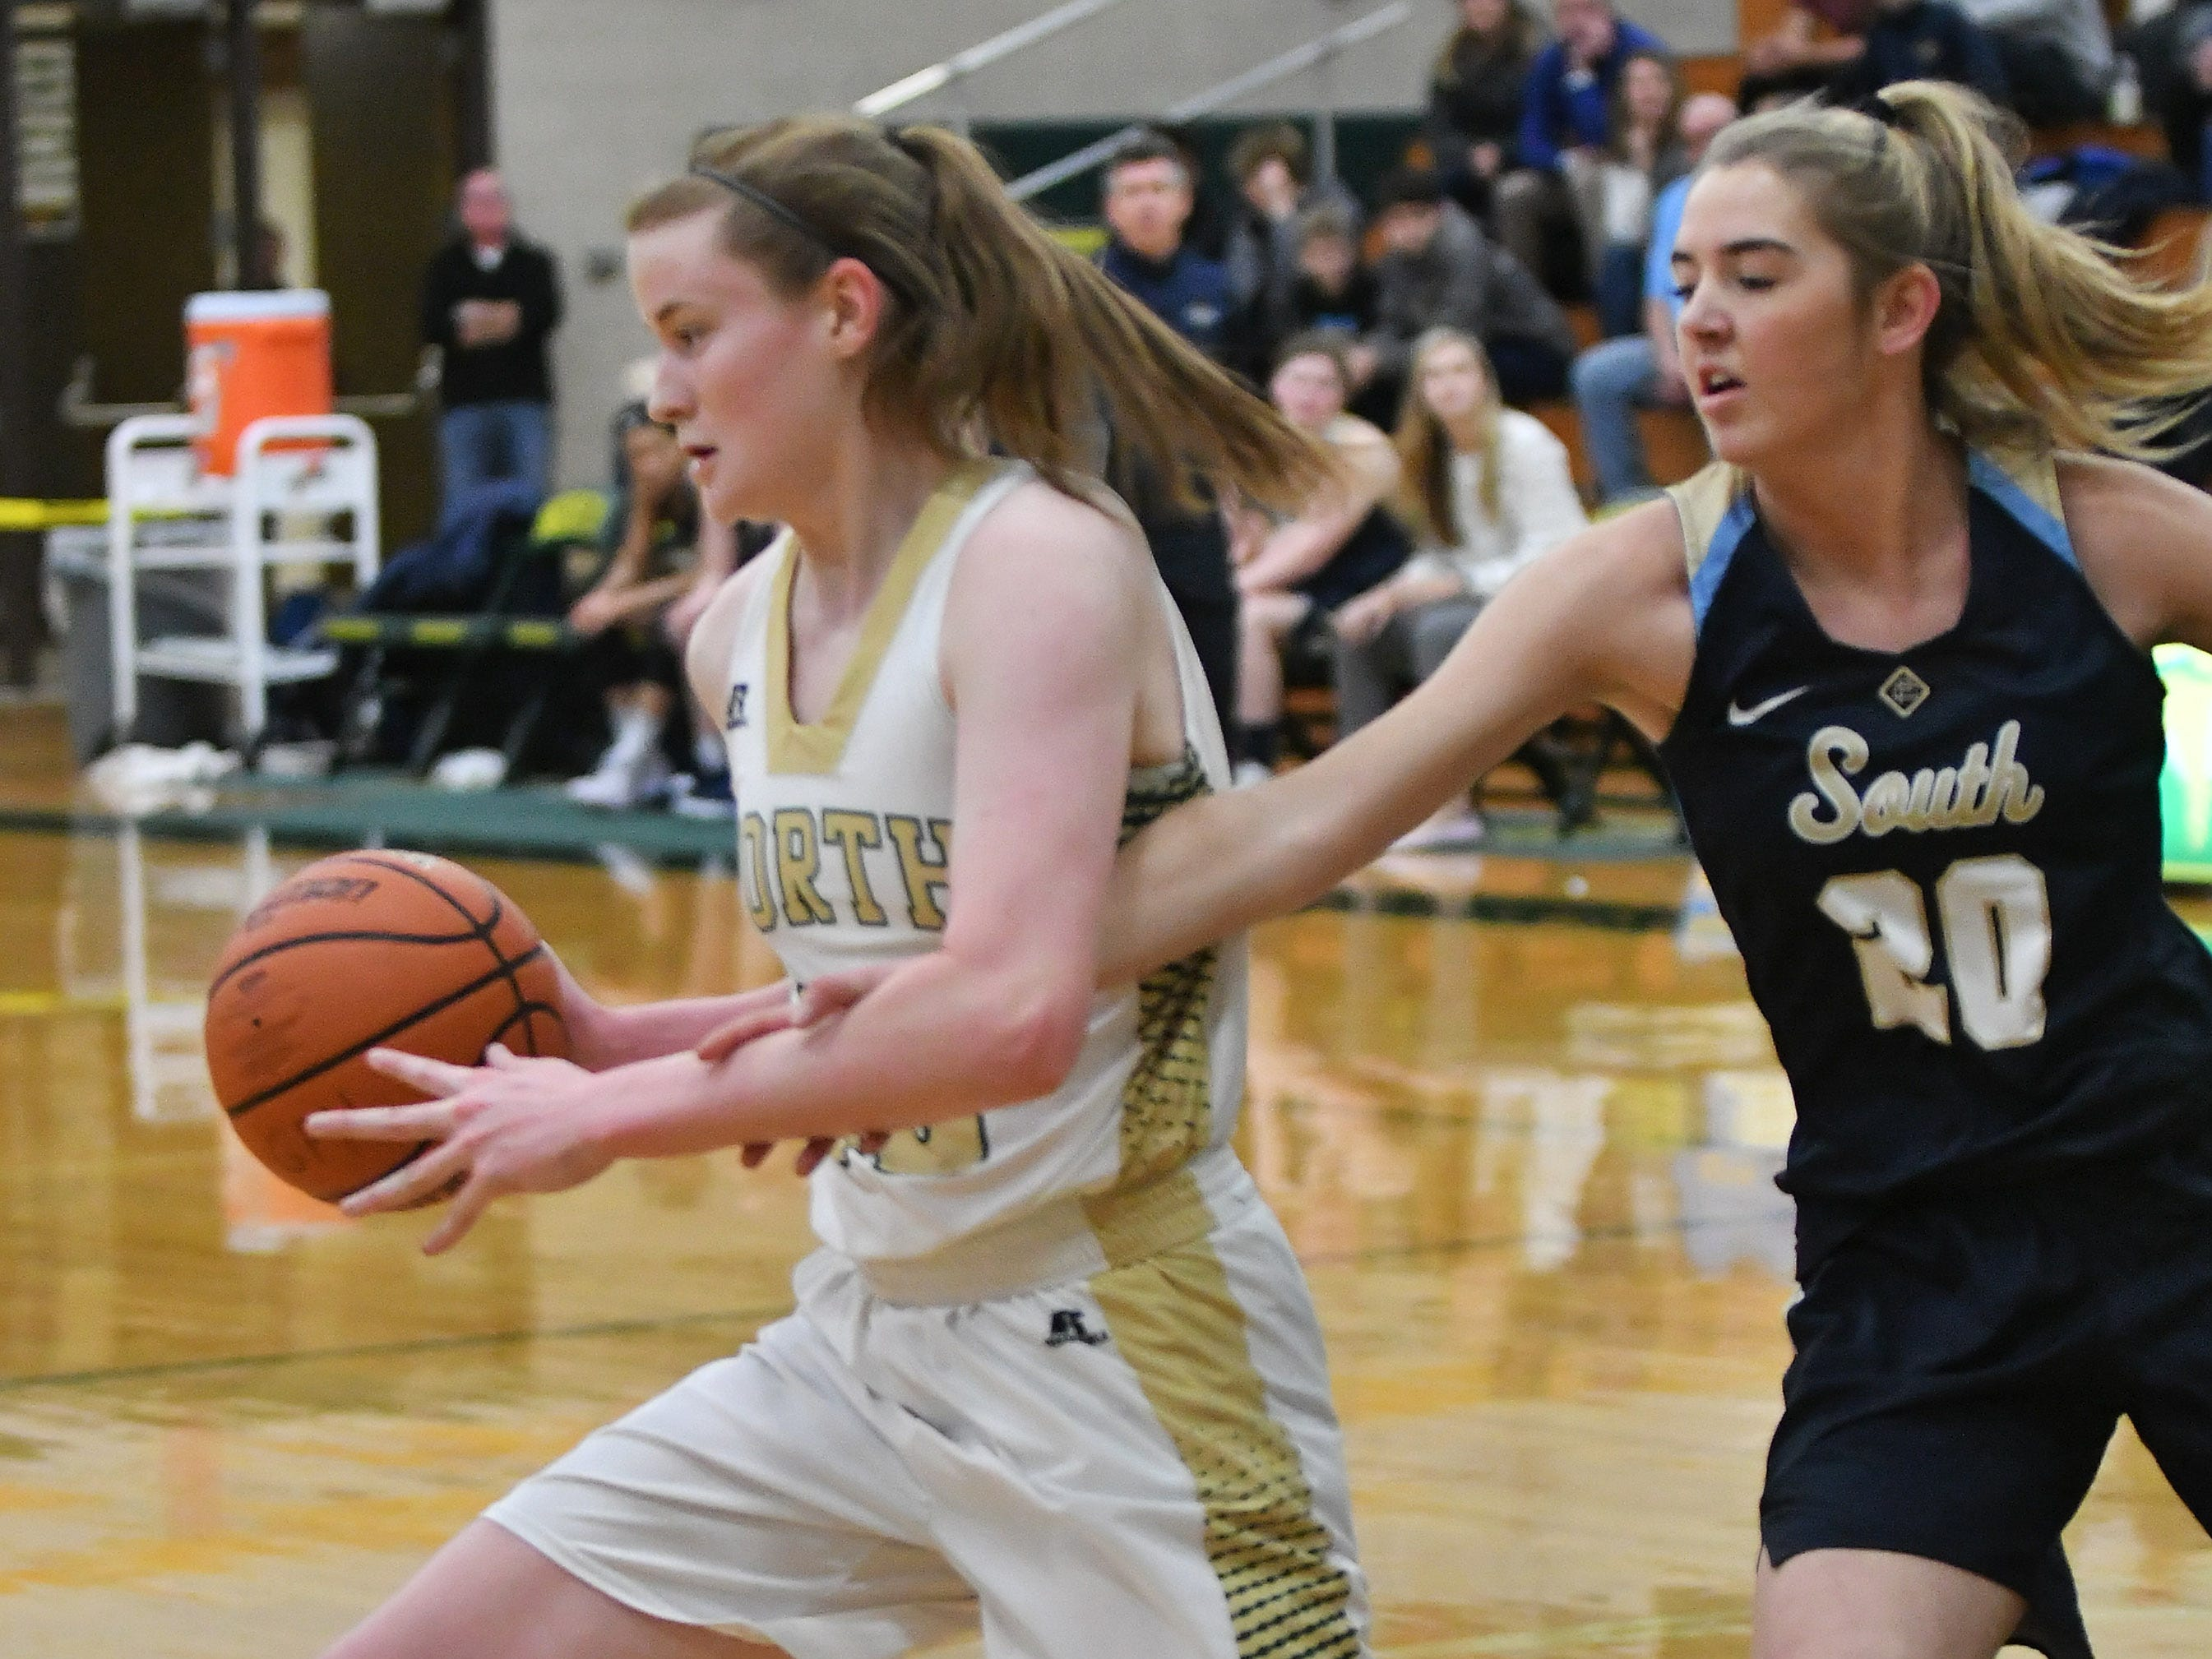 Grosse Pointe South's Cameron Lyndh reaches in on Grosse Pointe North's Julia Ayrault in the first quarter.